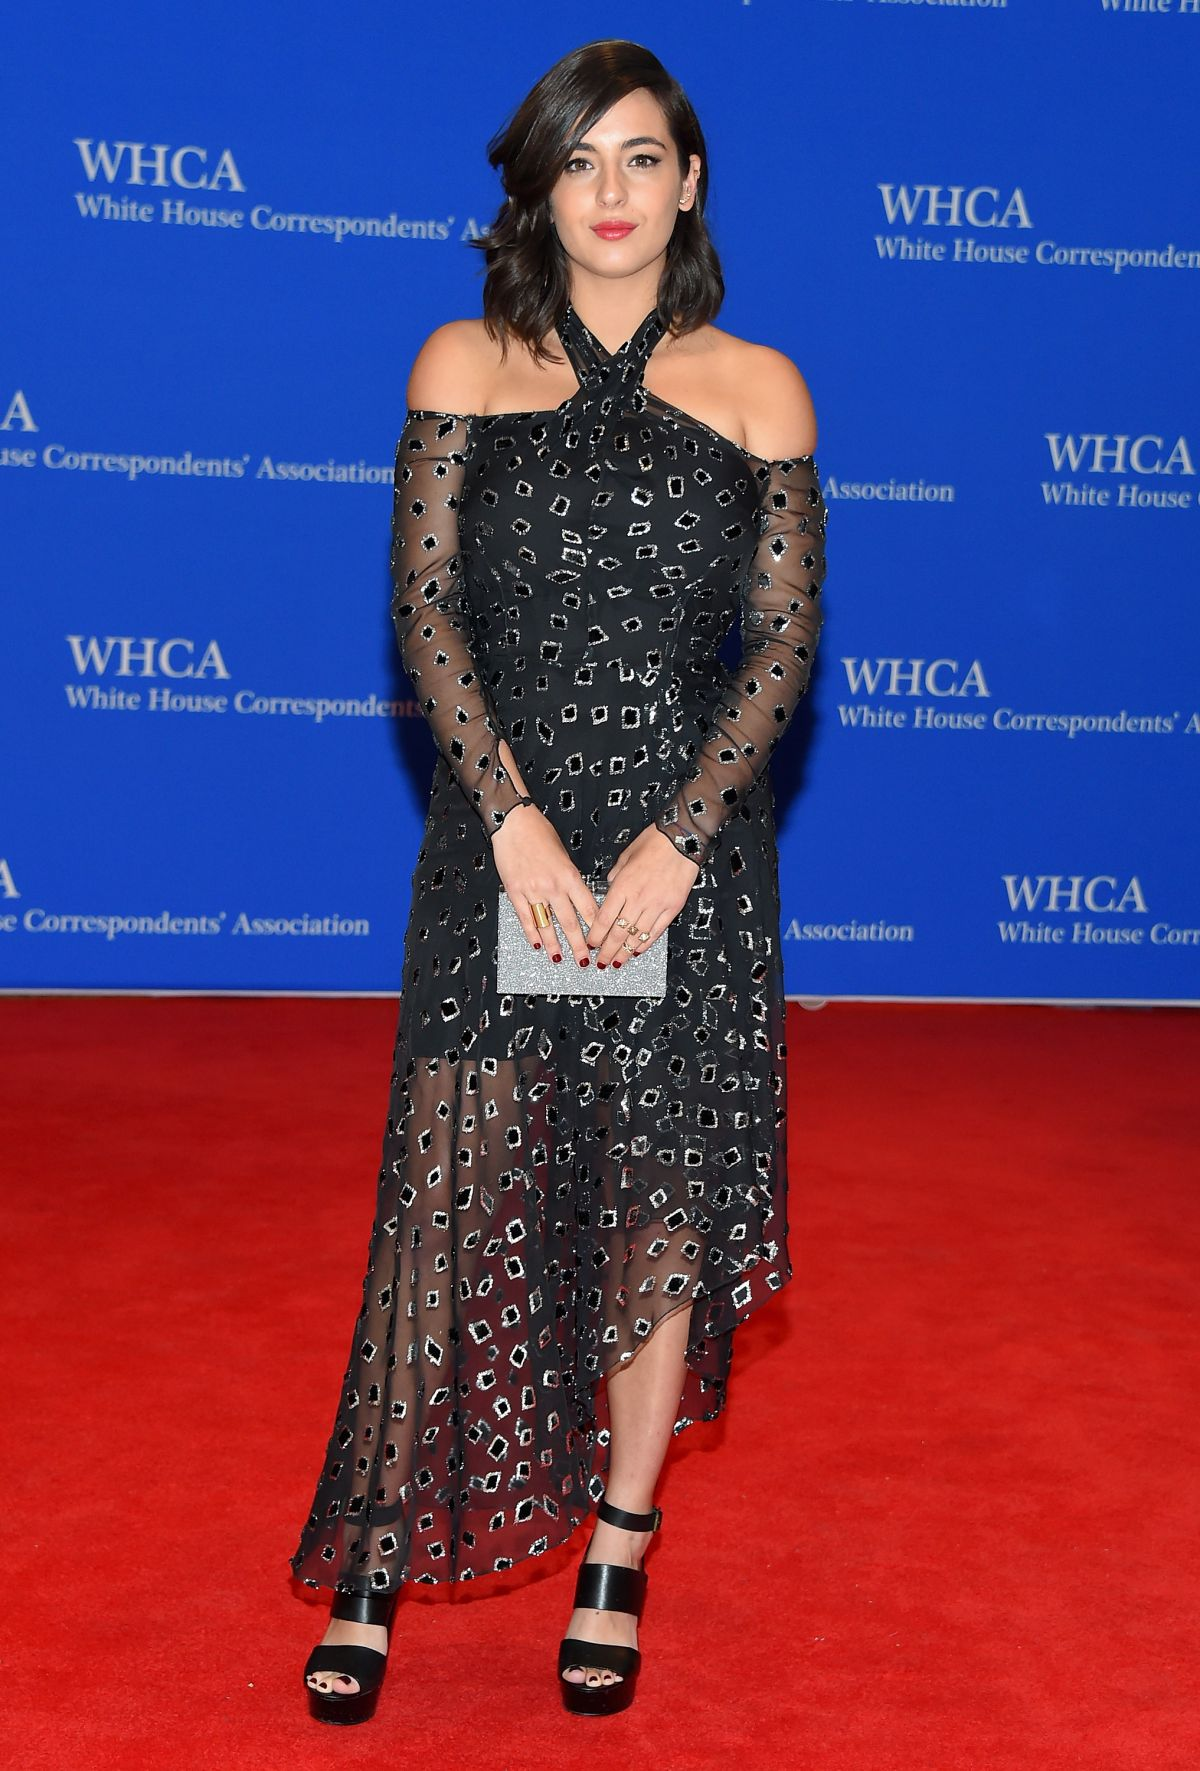 ALANNA MASTERSON at White House Correspondents Association Dinner in Washington